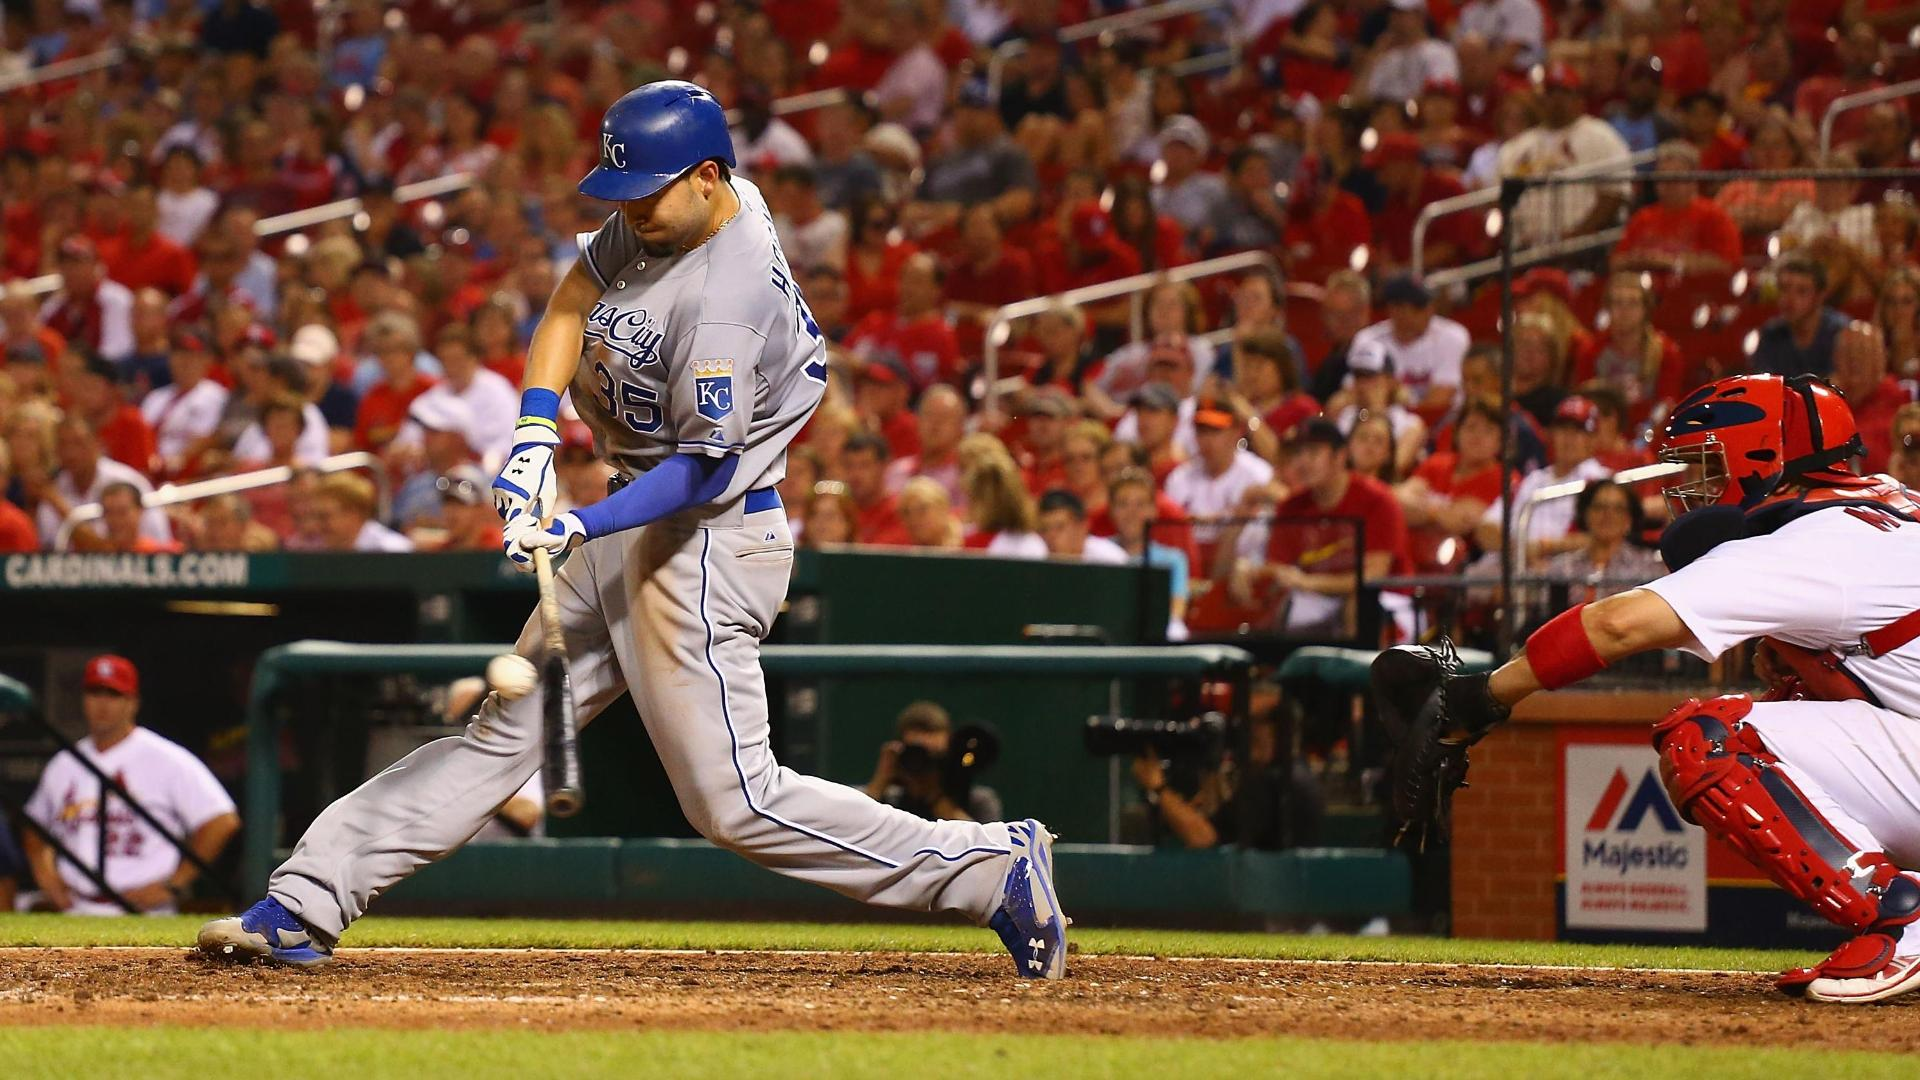 Video - Hosmer, Royals Fight Off Cardinals